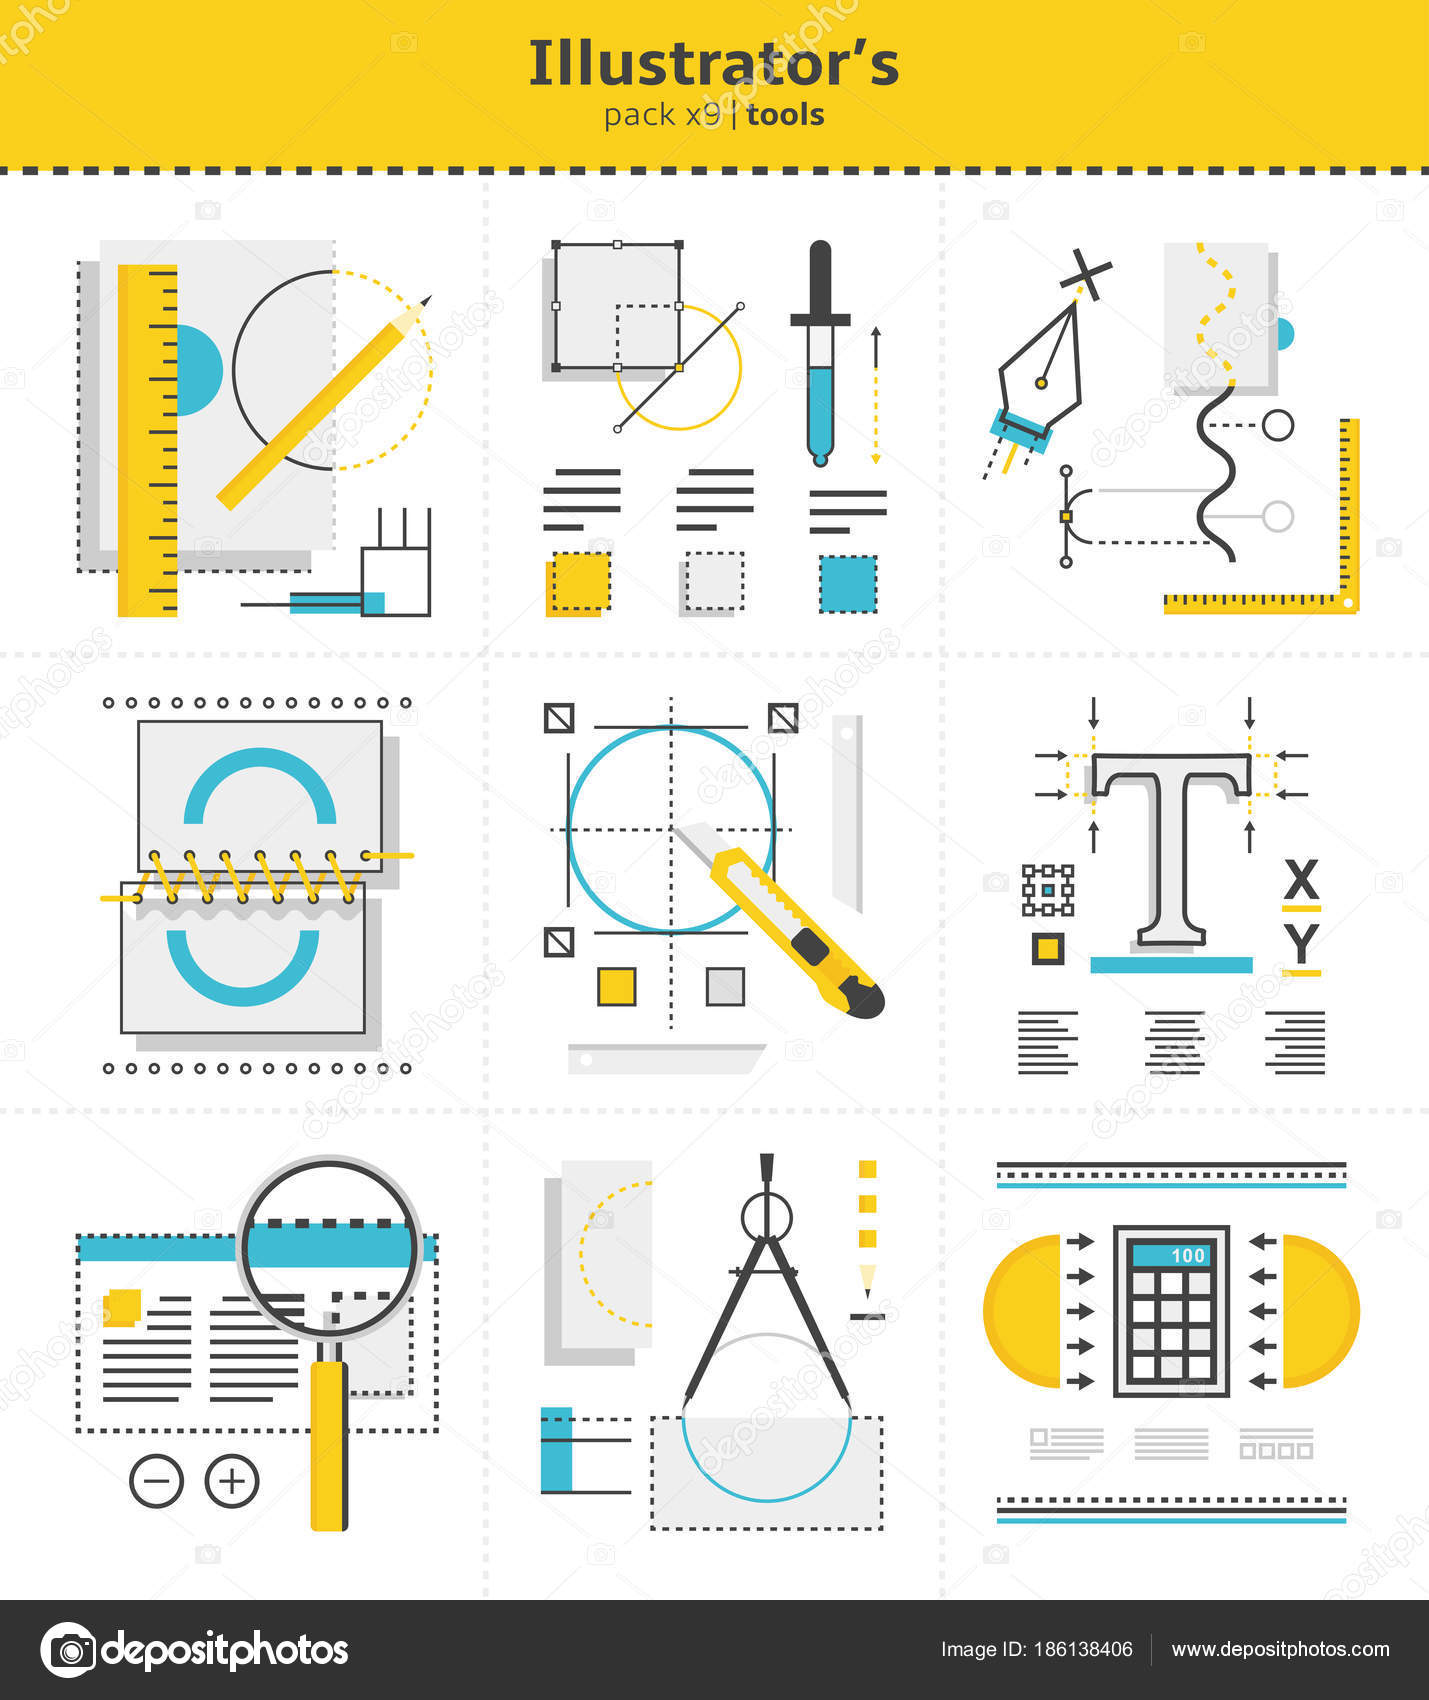 Isolated illustrator`s tools to use in work icons  Vector